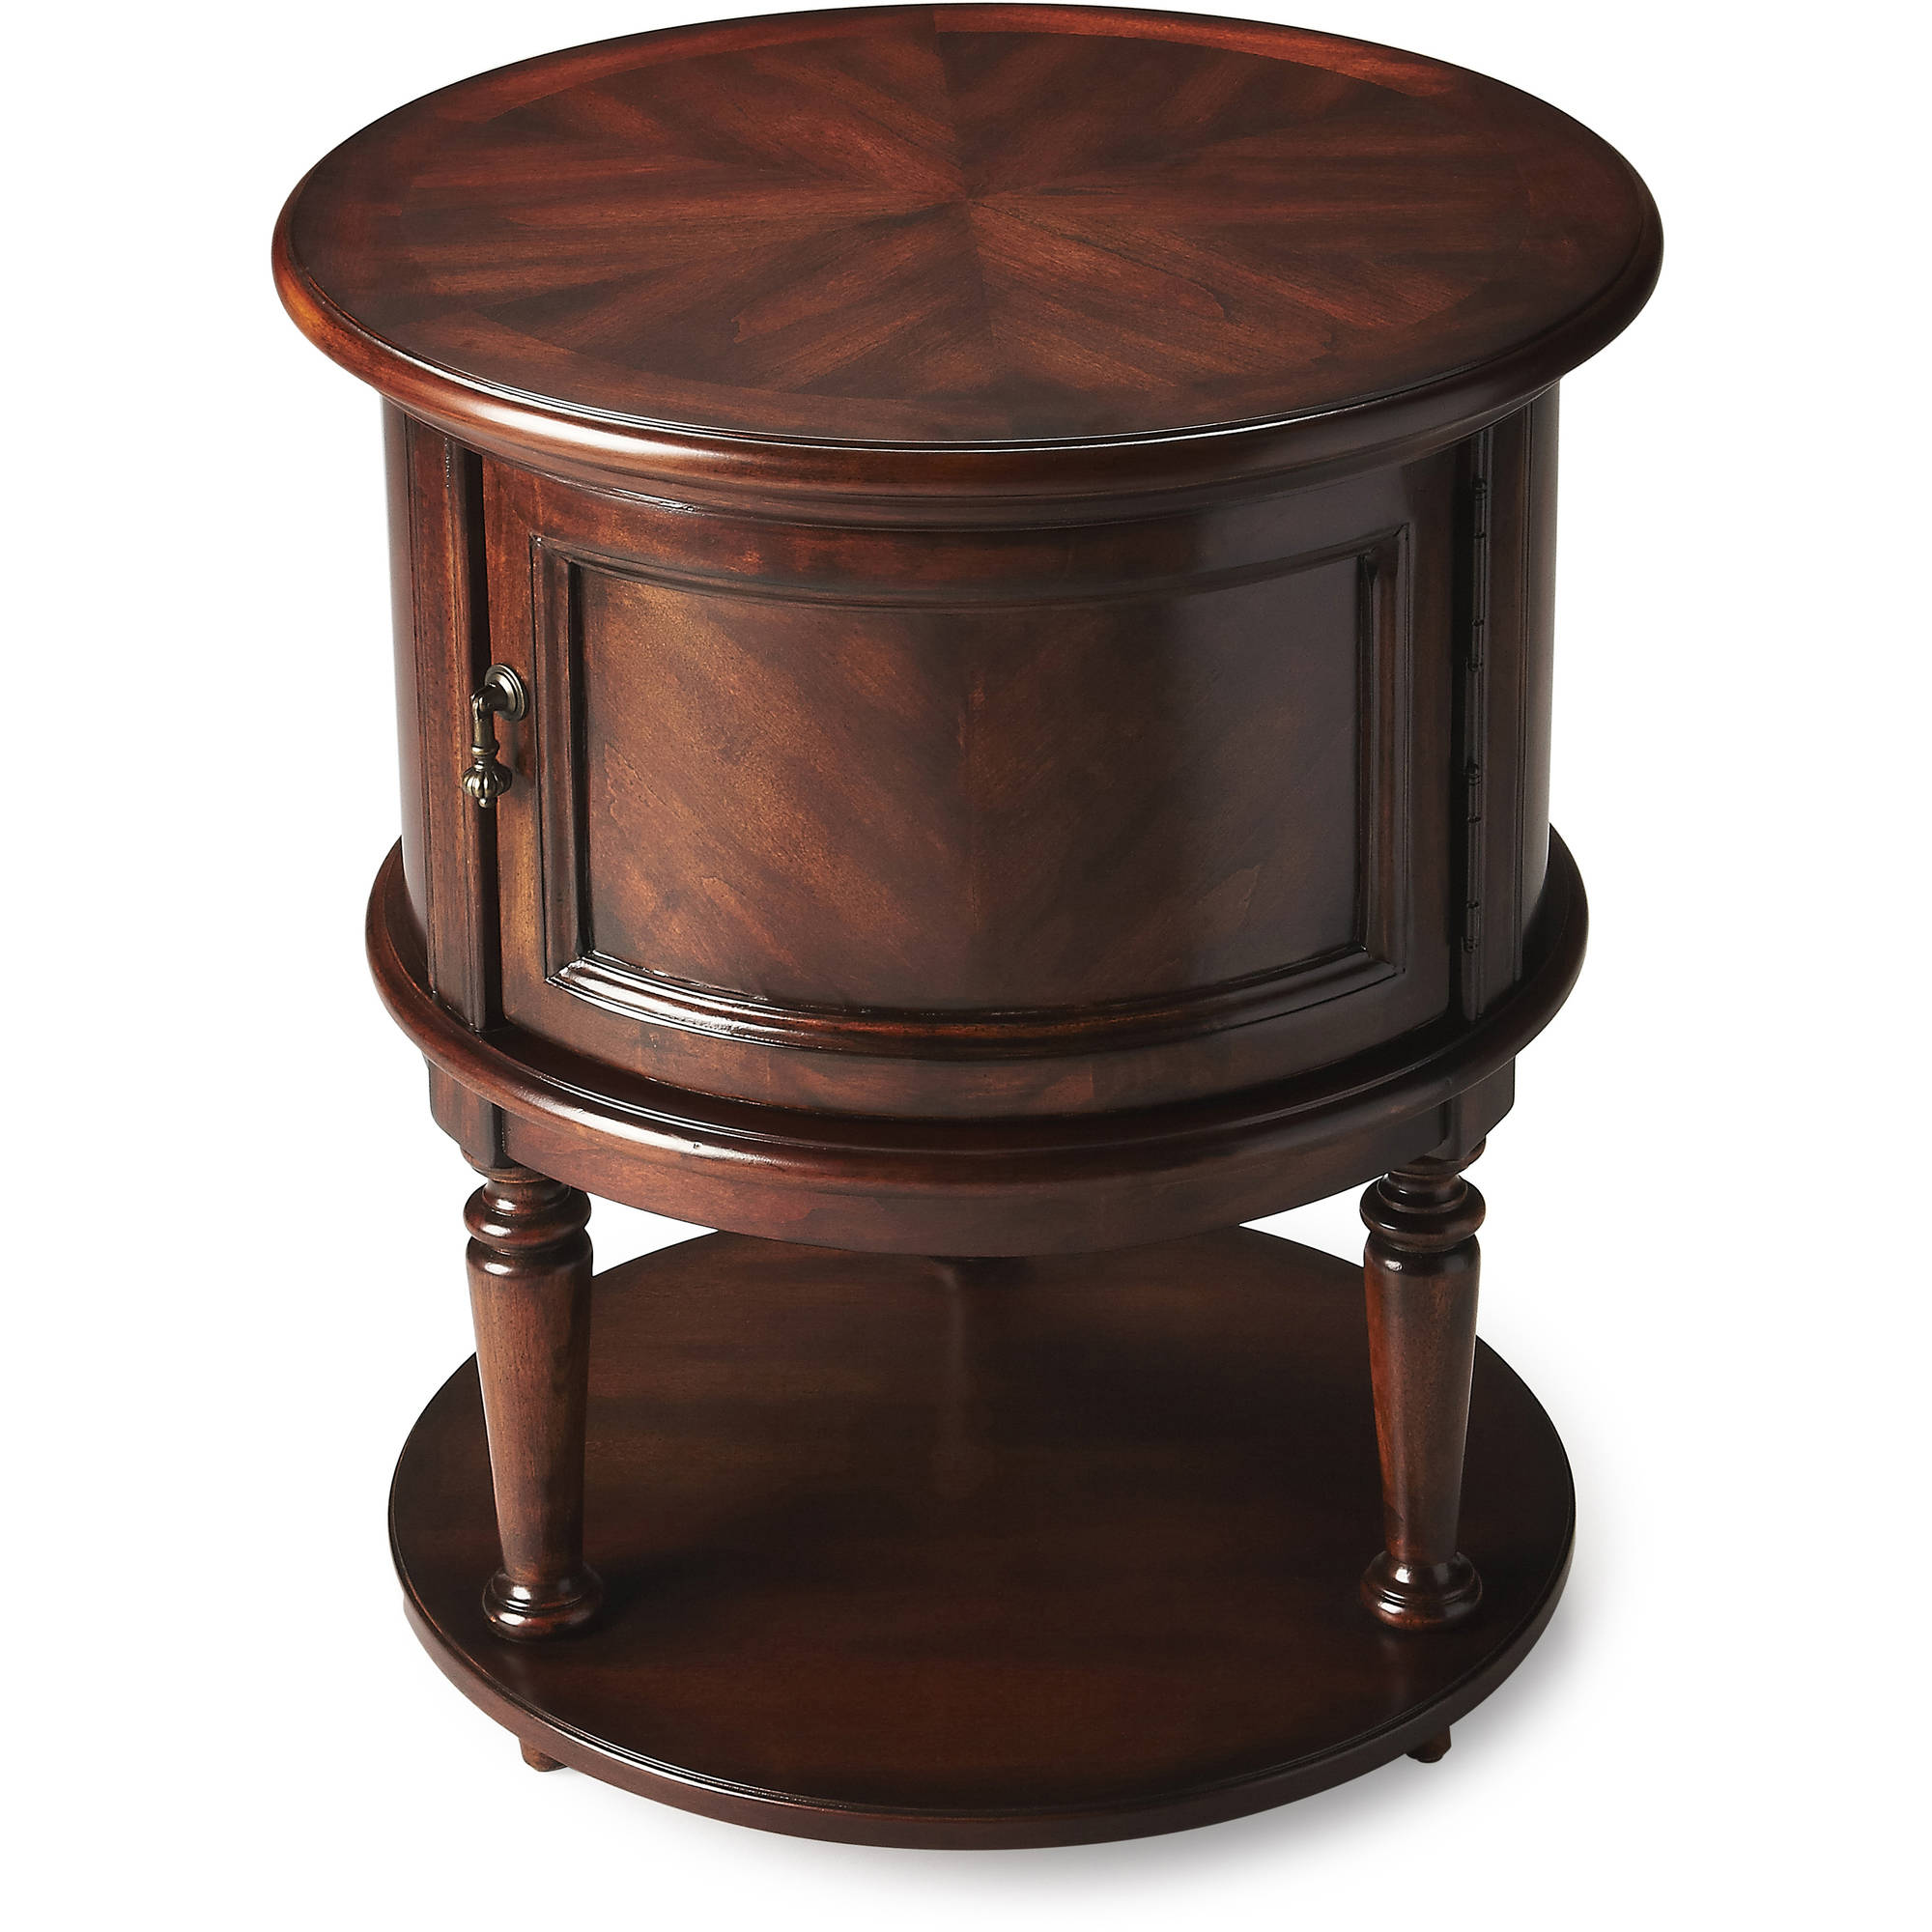 Butler Coffield Drum Table, Multiple Colors